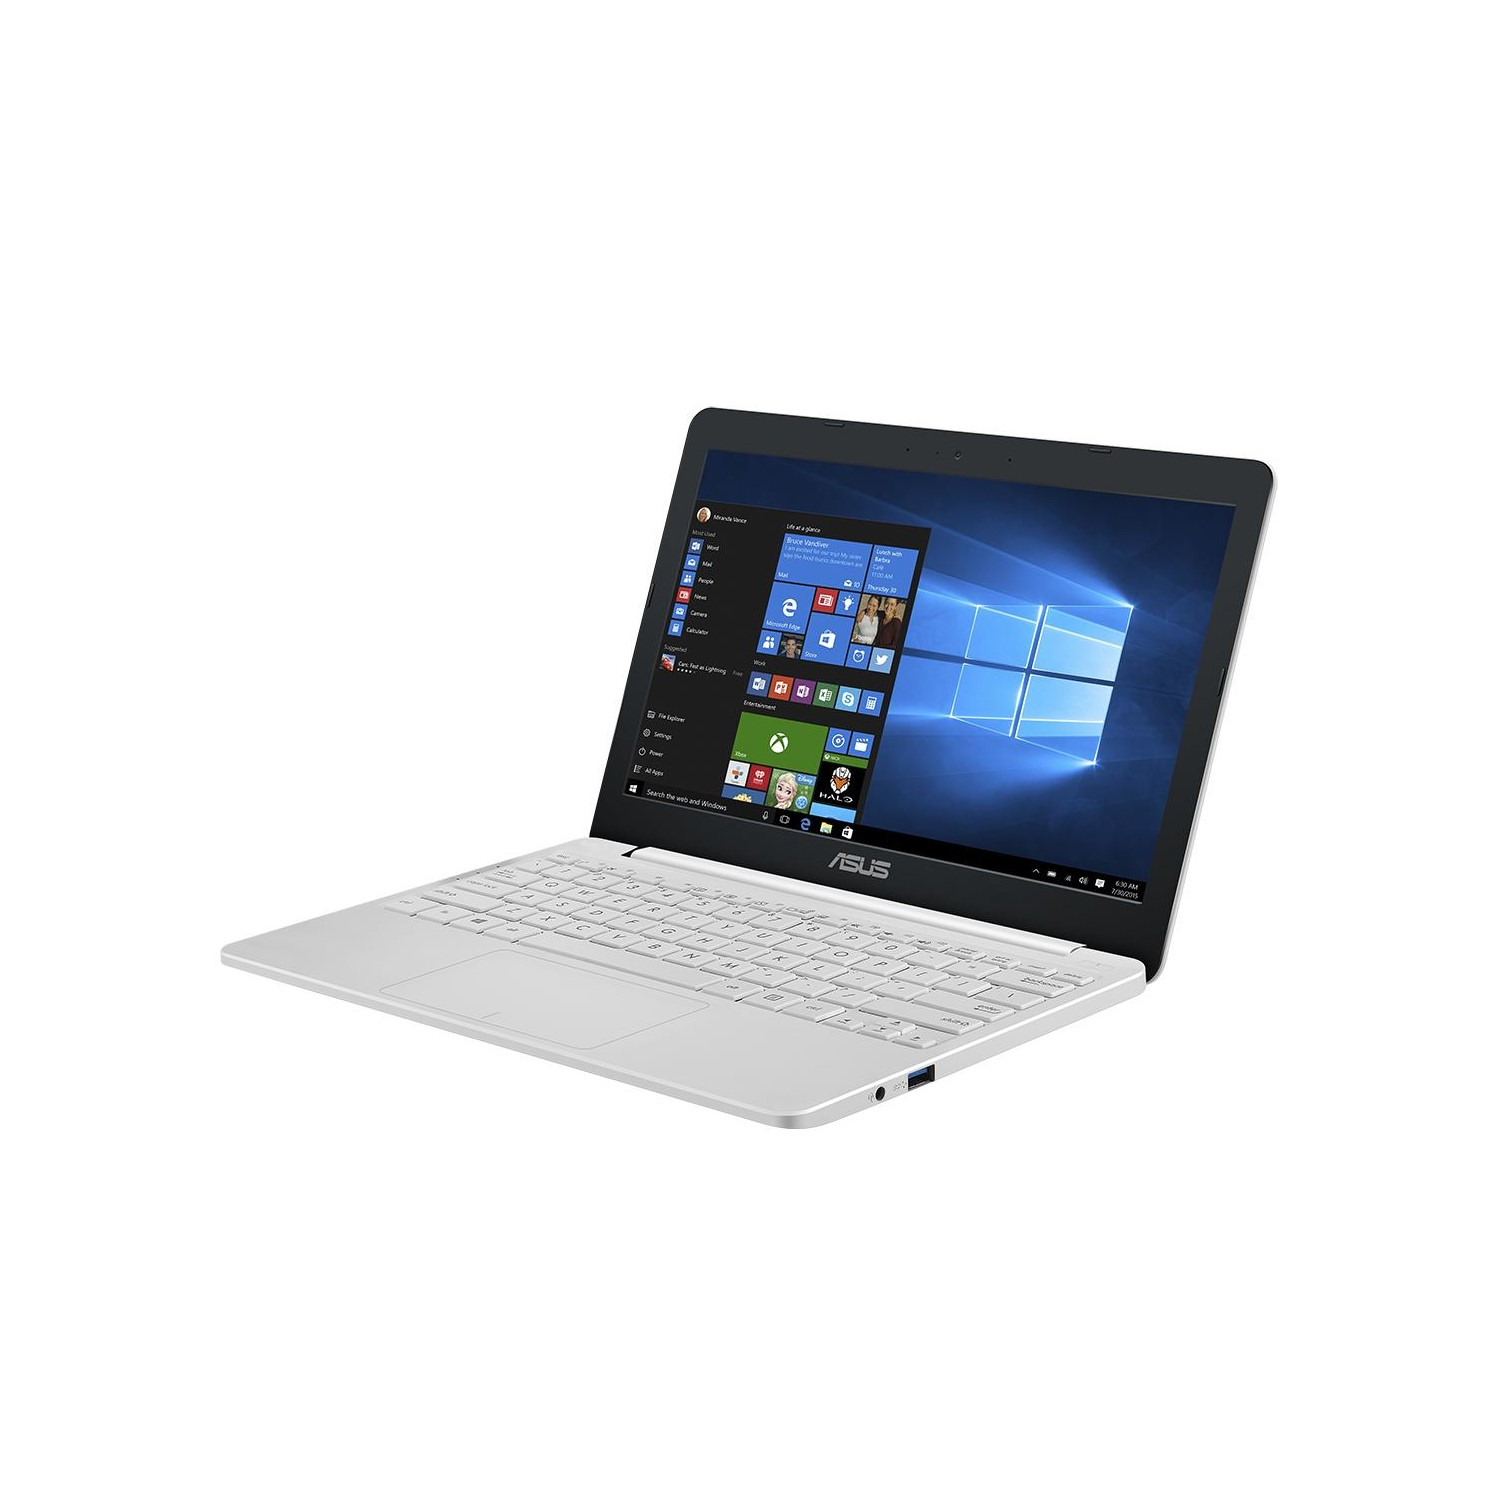 Asus VivoBook Intel Celeron N4000 2GB 32GB 11 6 Inch Windows 10 S Home  Laptop Includes Office 365